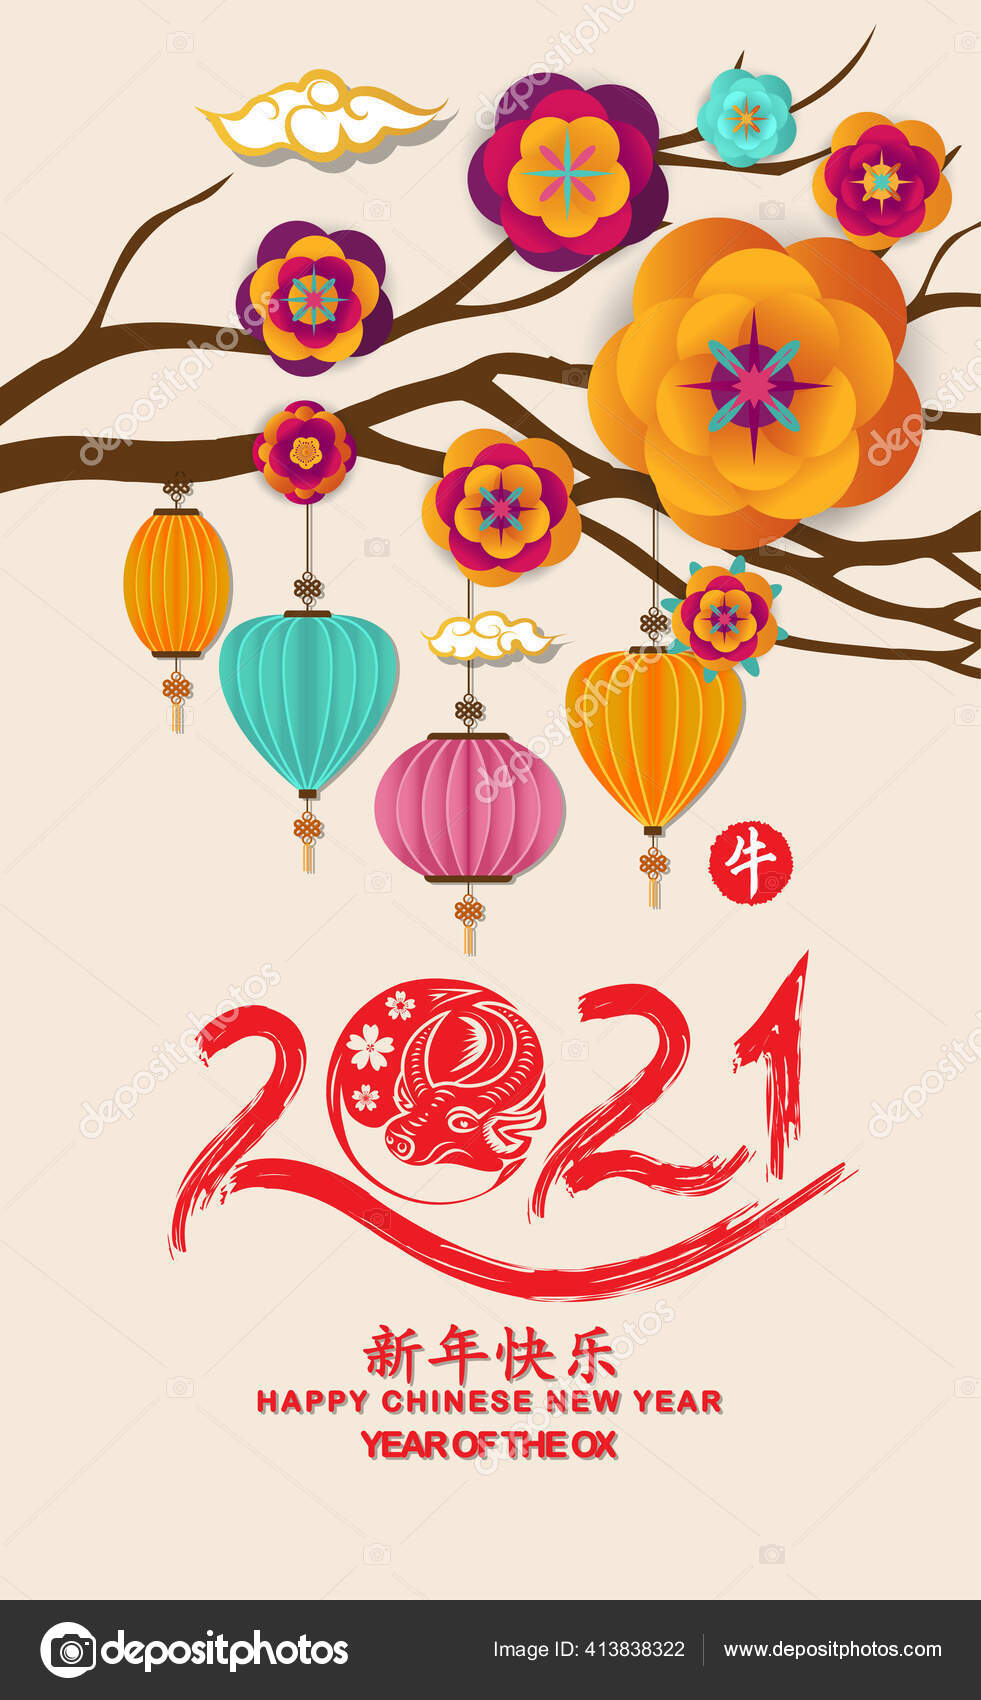 Download 2021 Chinese New Year Greeting Card With Ox Emblem And Sakura Branch Year O Chinese New Year Greeting Chinese New Year Card New Year Greeting Cards